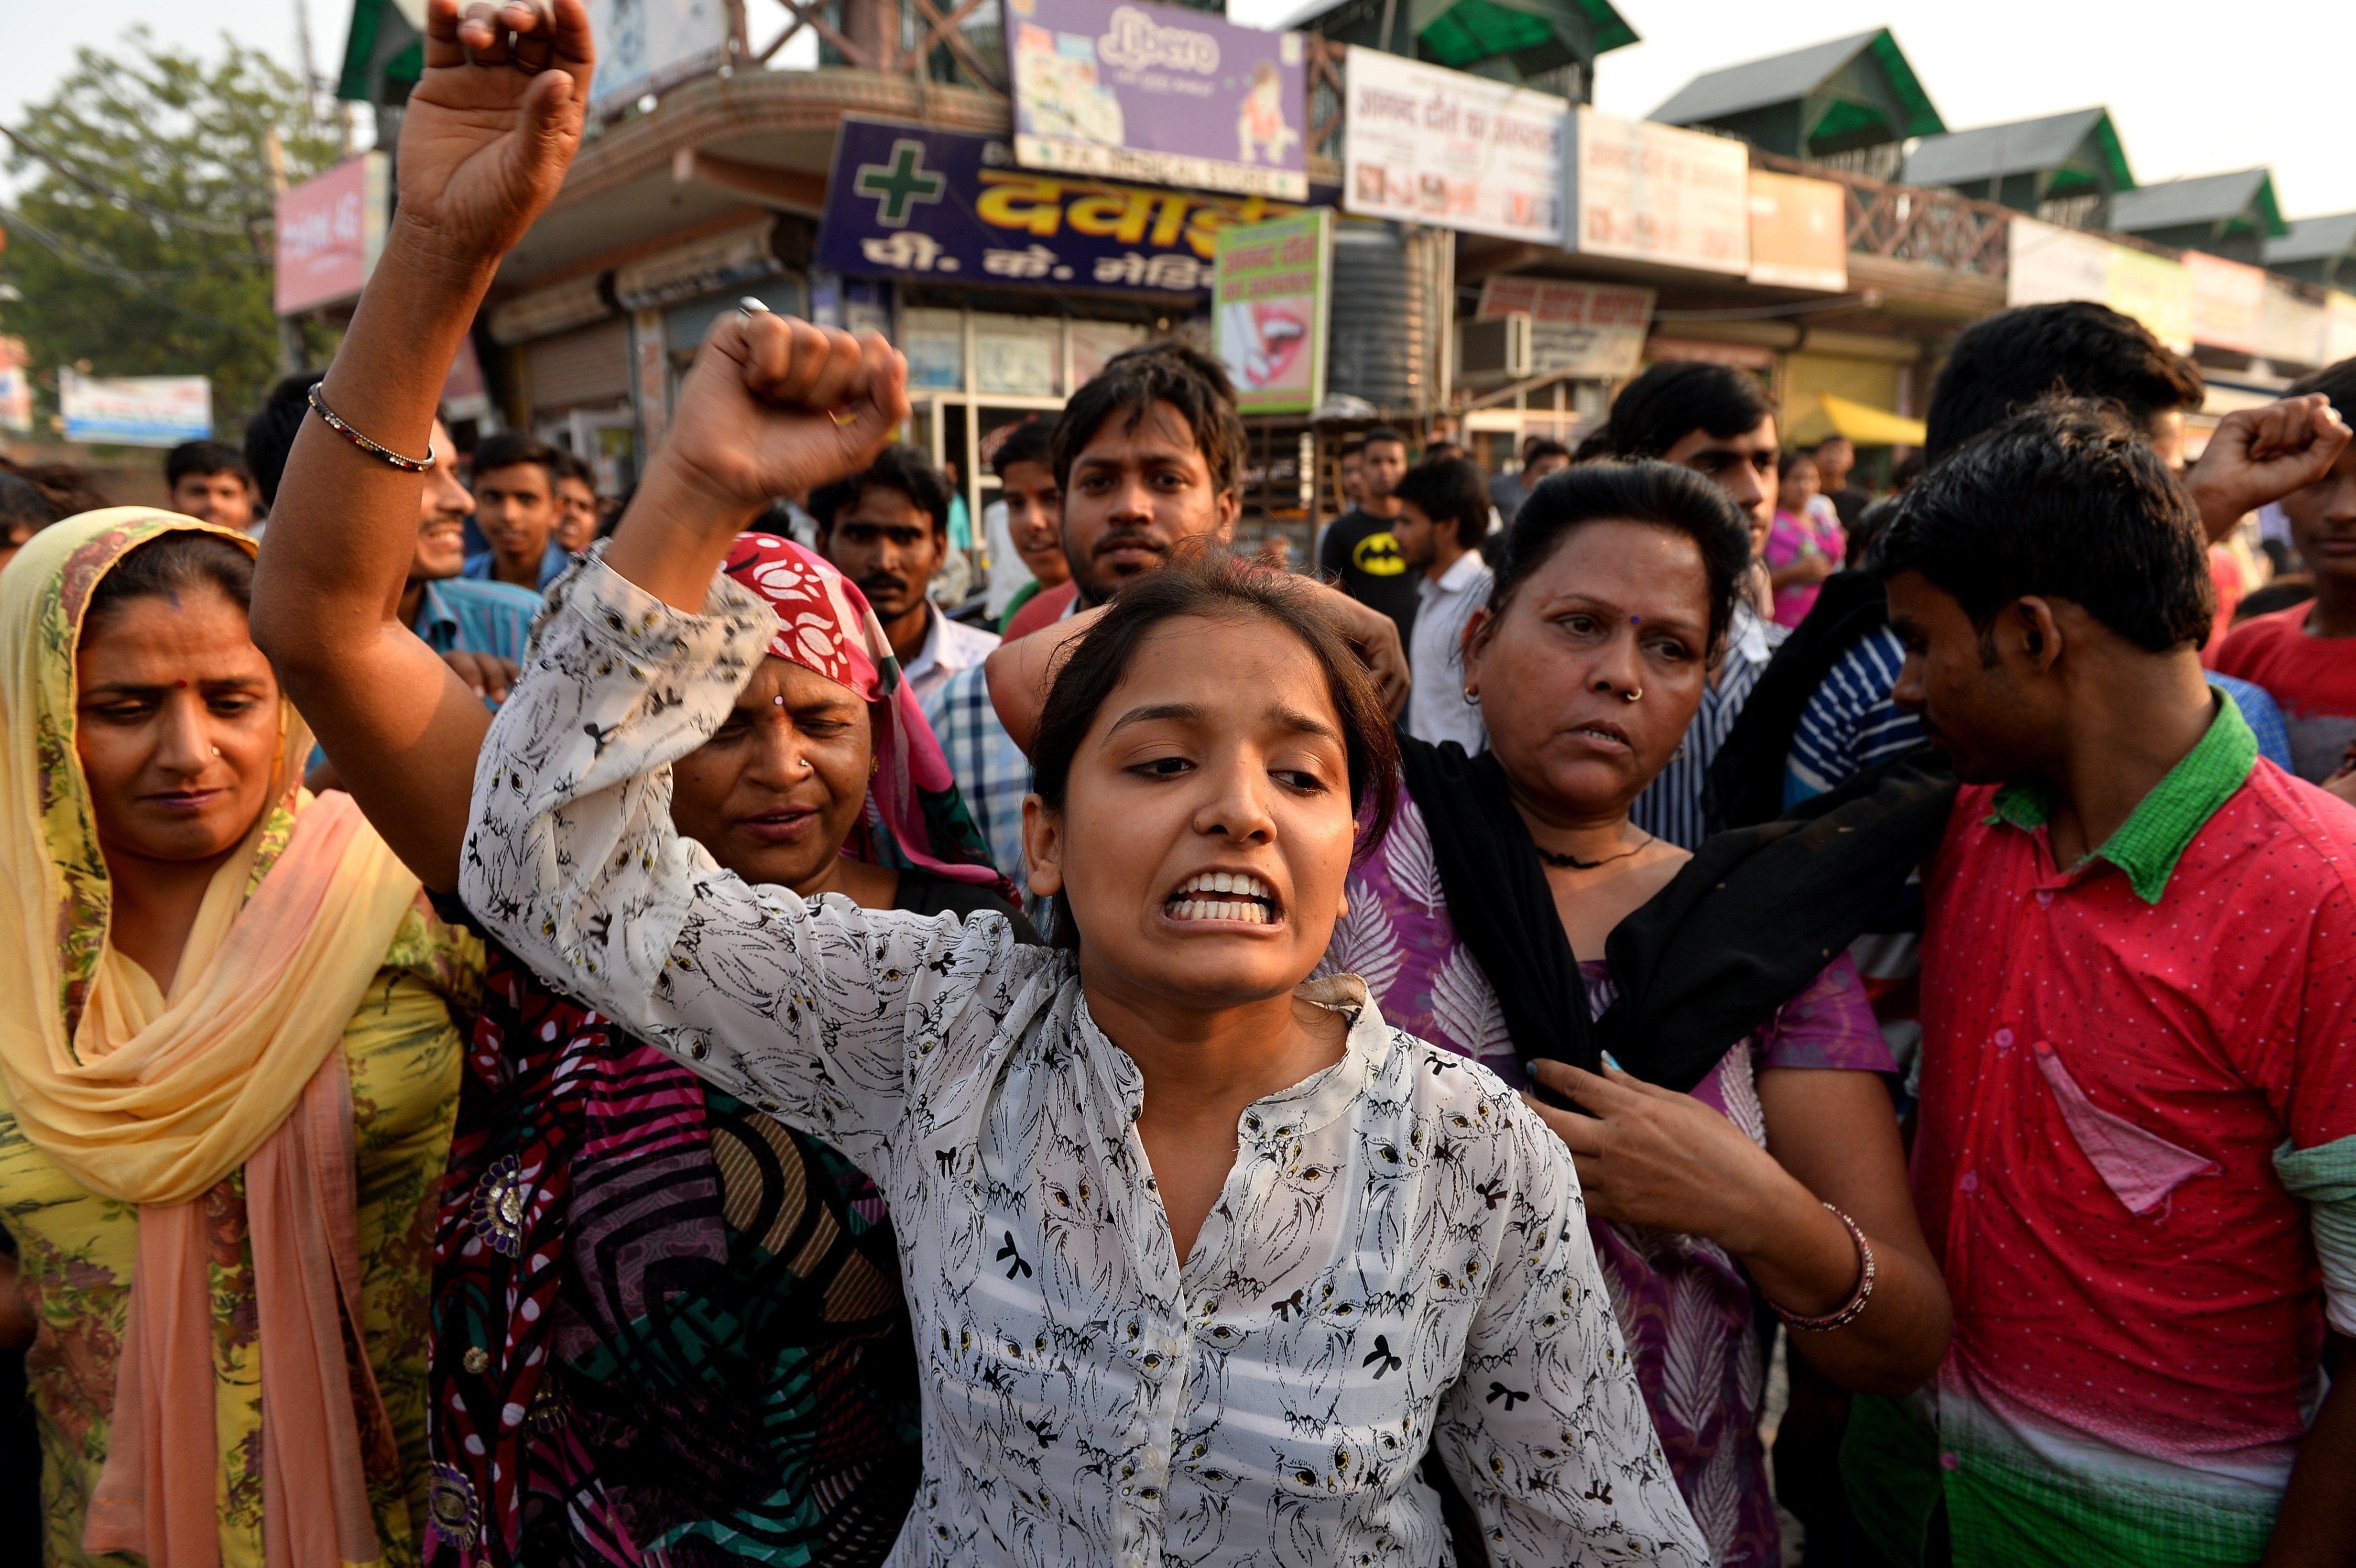 Indian protesters shout slogans during a demonstration near the home of a minor girl who was raped in New Delhi on October 17, 2015. A toddler and a five-year-old girl were raped in separate attacks in New Delhi overnight with at least one gang-raped, police said October 17, as activists warned of an 'epidemic' of sexual violence in the capital. The two-and-a-half-year-old girl was abducted from a religious event in west Delhi by two men on the night of October 16 and raped before being dumped in a park near her home, relatives and police said. In a separate incident on the other side of the city, the five-year-old was lured to a neighbour's house and raped by three men, a police officer told AFP. AFP PHOTO / Chandan KHANNA        (Photo credit should read Chandan Khanna/AFP/Getty Images)